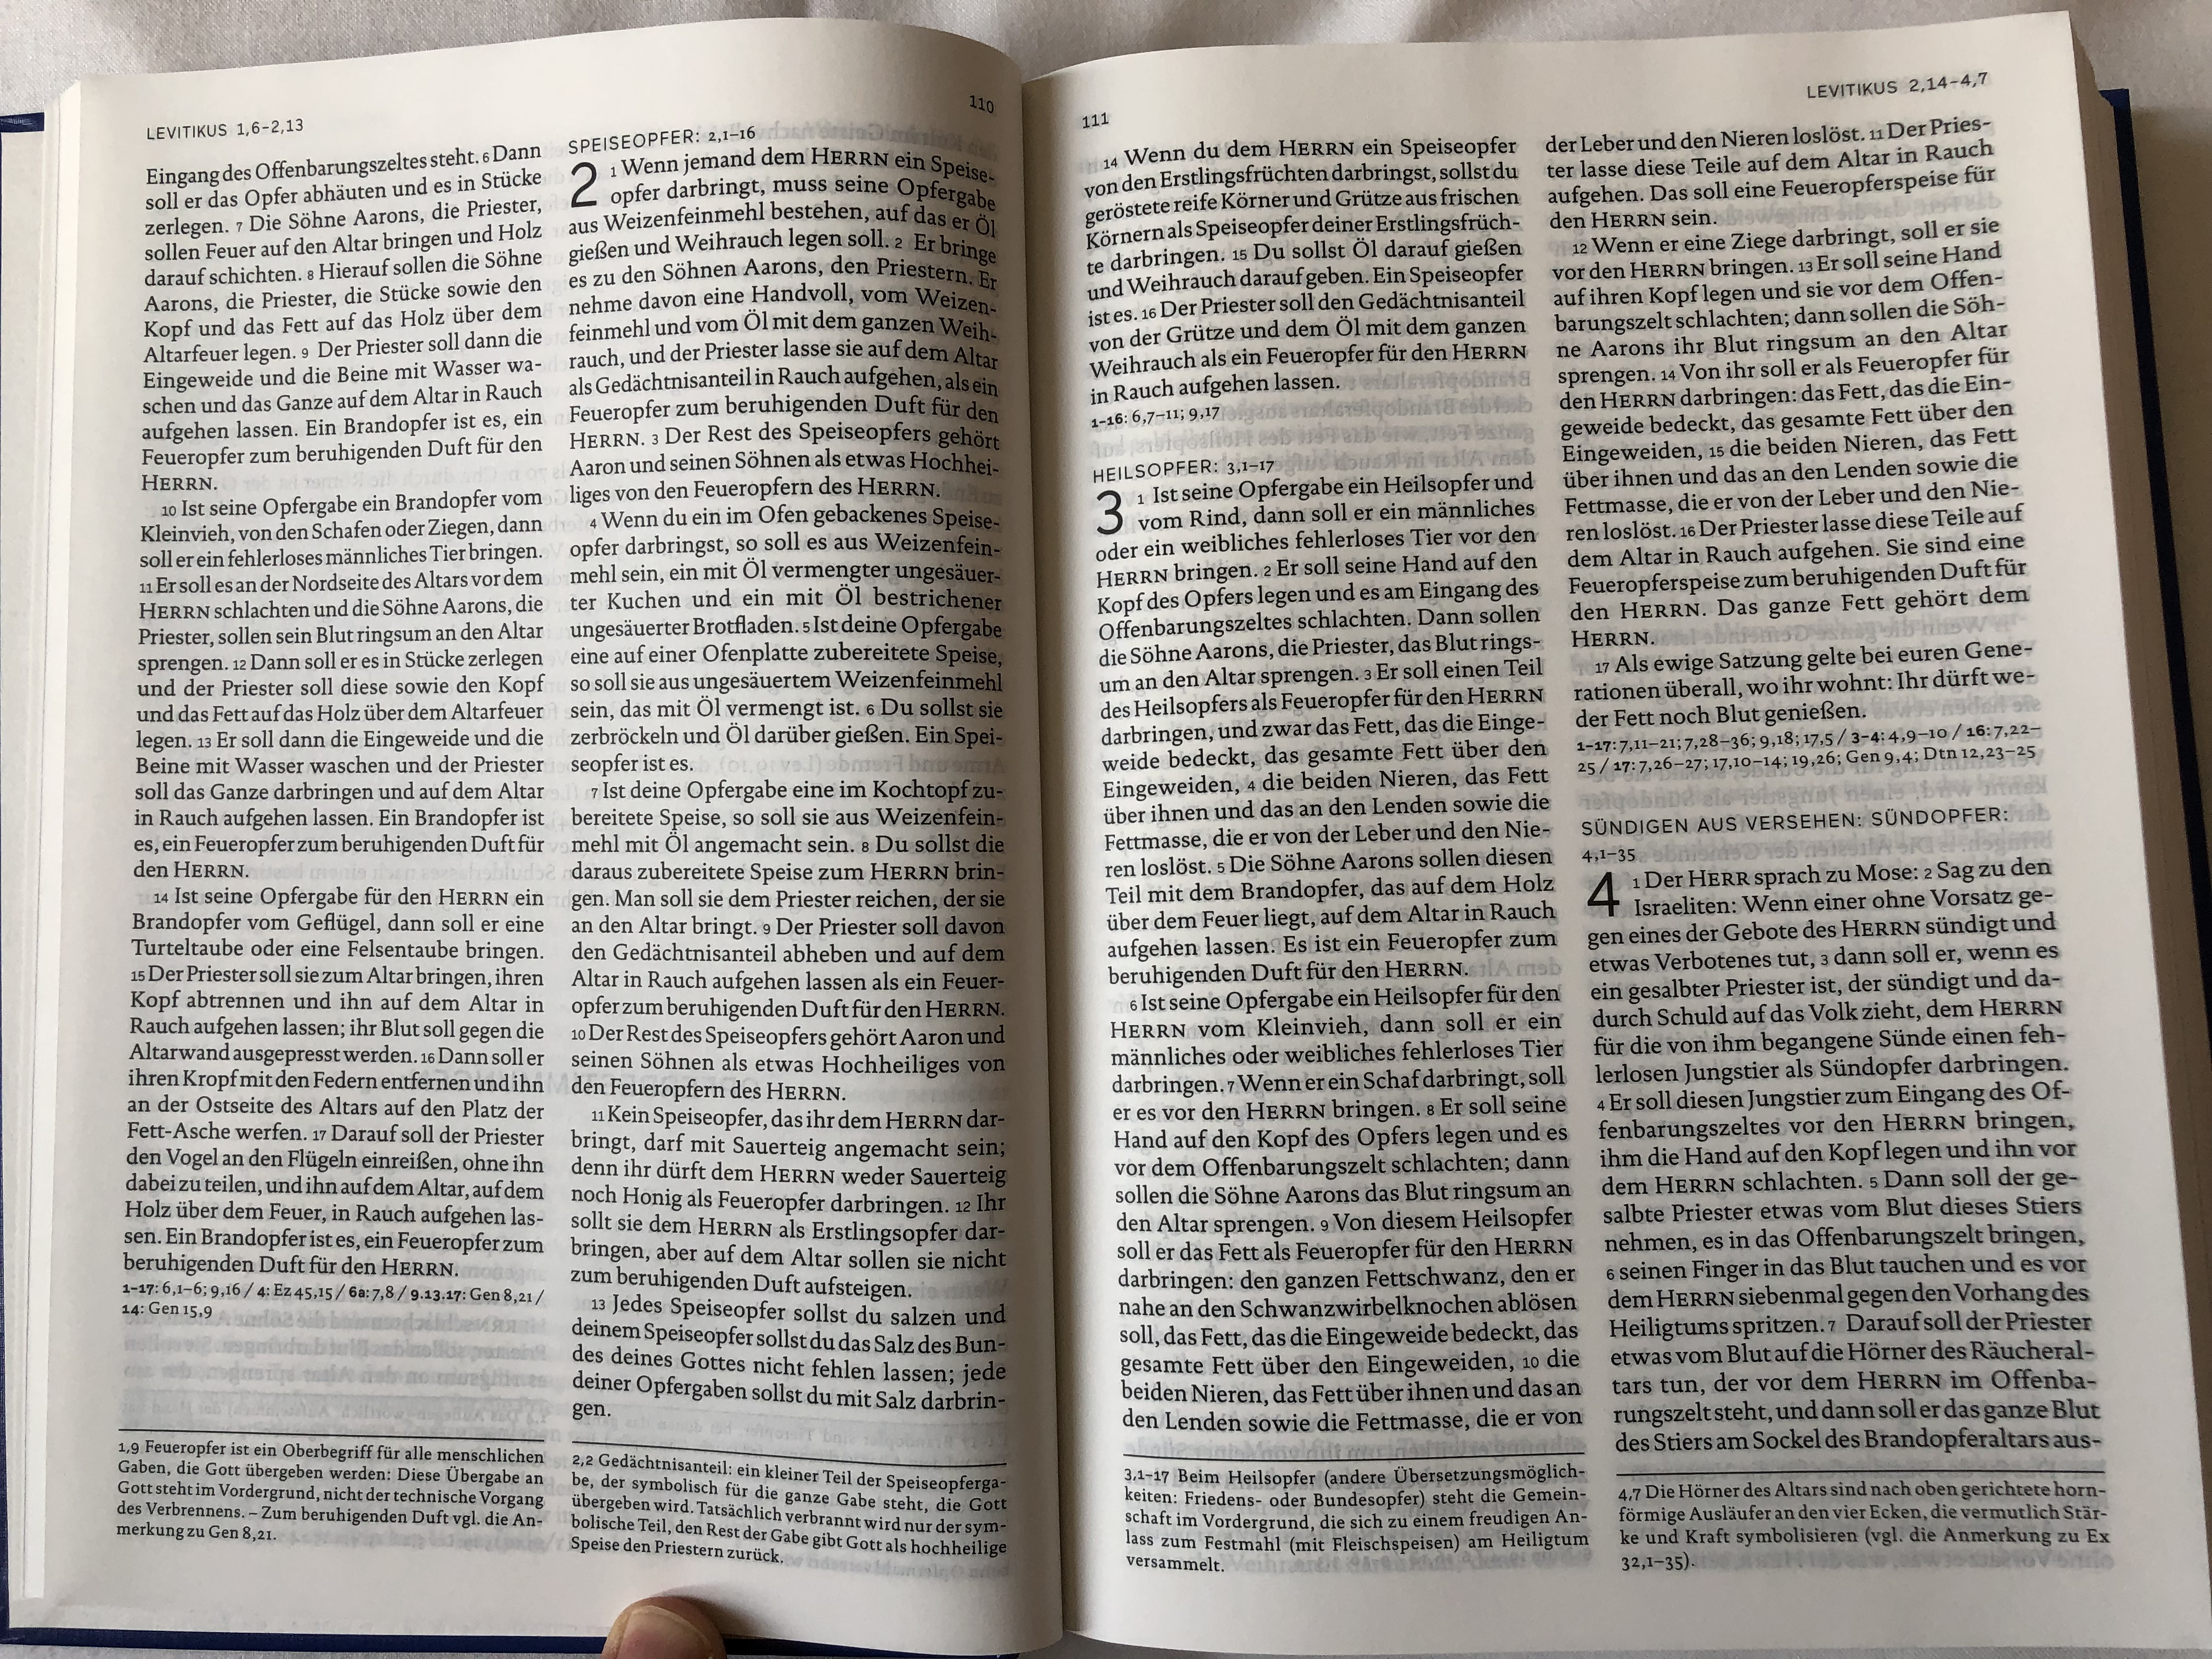 die-bibel-einheits-bersetzung-schulbibel-blau-german-language-holy-bible-unitary-translation-blue-contains-deuterocanonical-books-with-book-introductions-maps-notes-bible-history-timetable-hardcover-2017-kato-6619263-.jpg